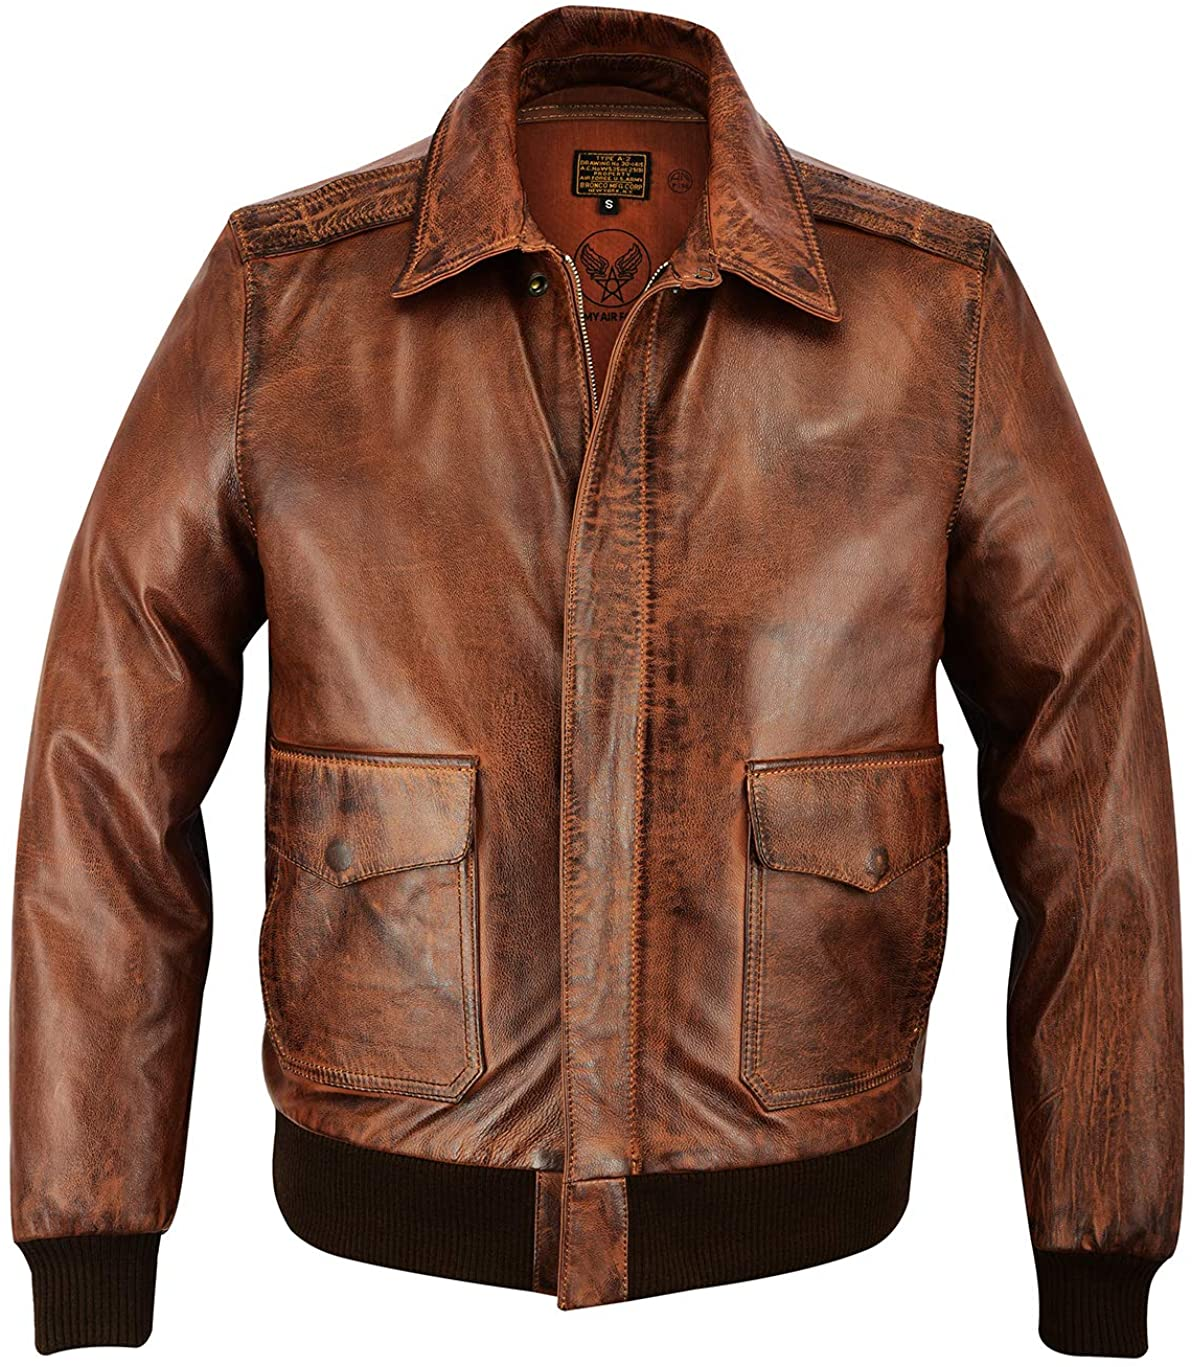 Men A-2 Real Goatskin Leather Pilot Flying Jacket Aviator Bomber Airforce Bronco Distressed Brown